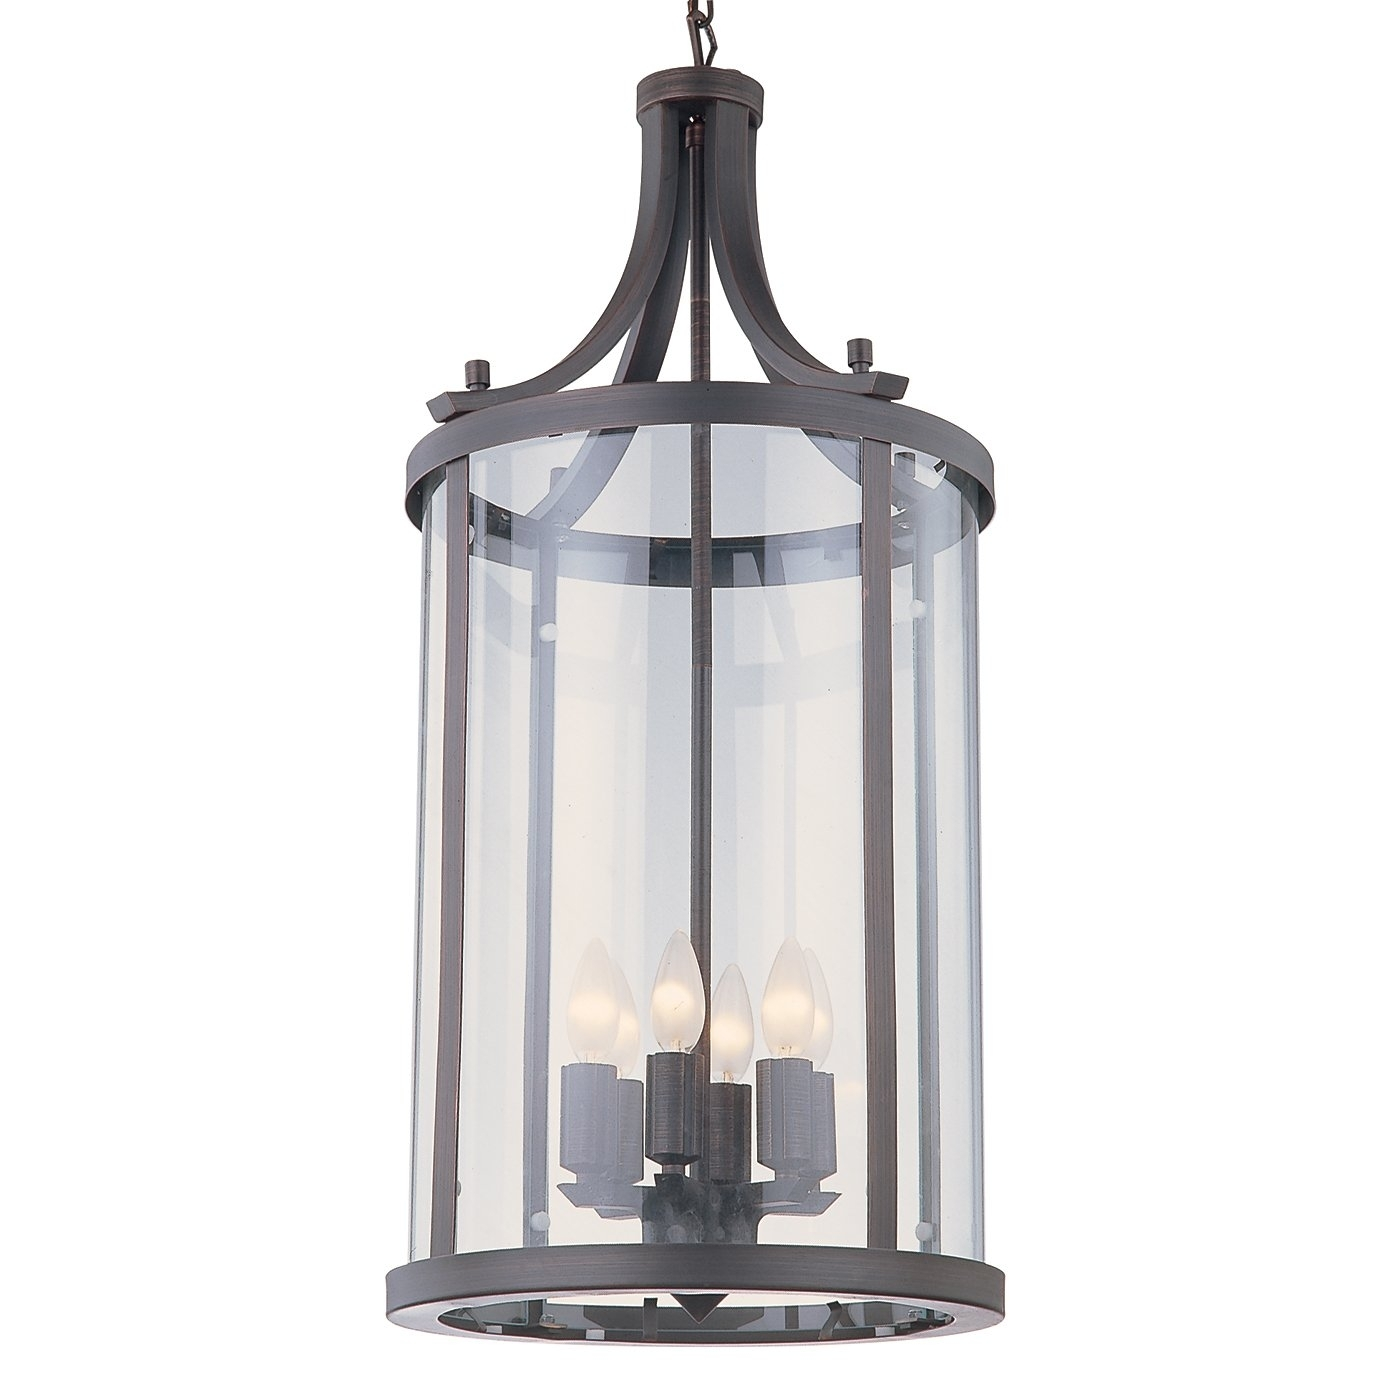 Foyer Lighting Lowes – Trgn #919752Bf2521 Regarding Outdoor Entrance Ceiling Lights (#6 of 15)